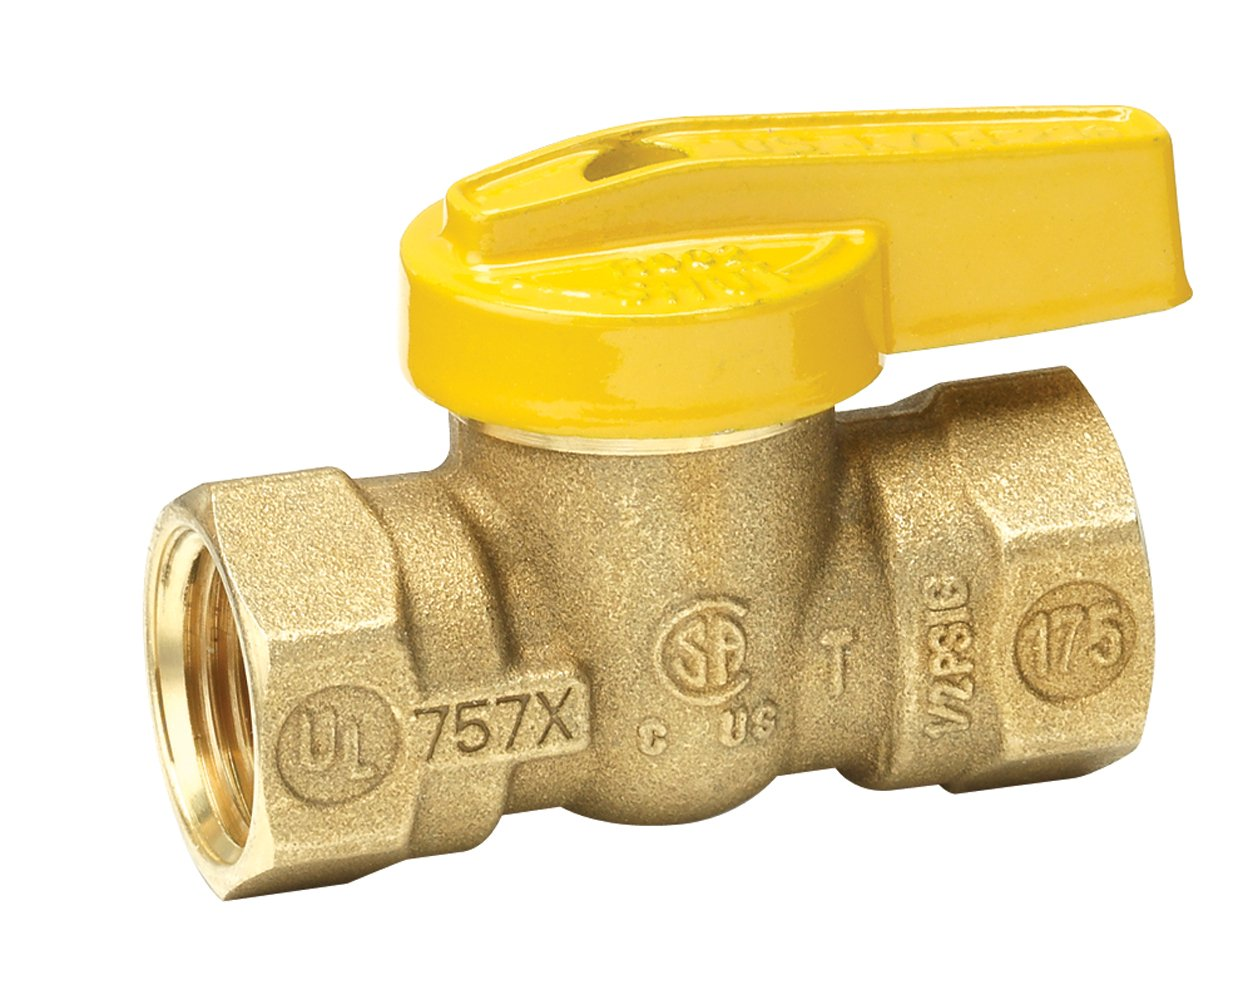 Homewerks VGV-1LH-B3B Premium Gas Ball Valve, Female Thread x Female Thread, Brass, 1/2-Inch